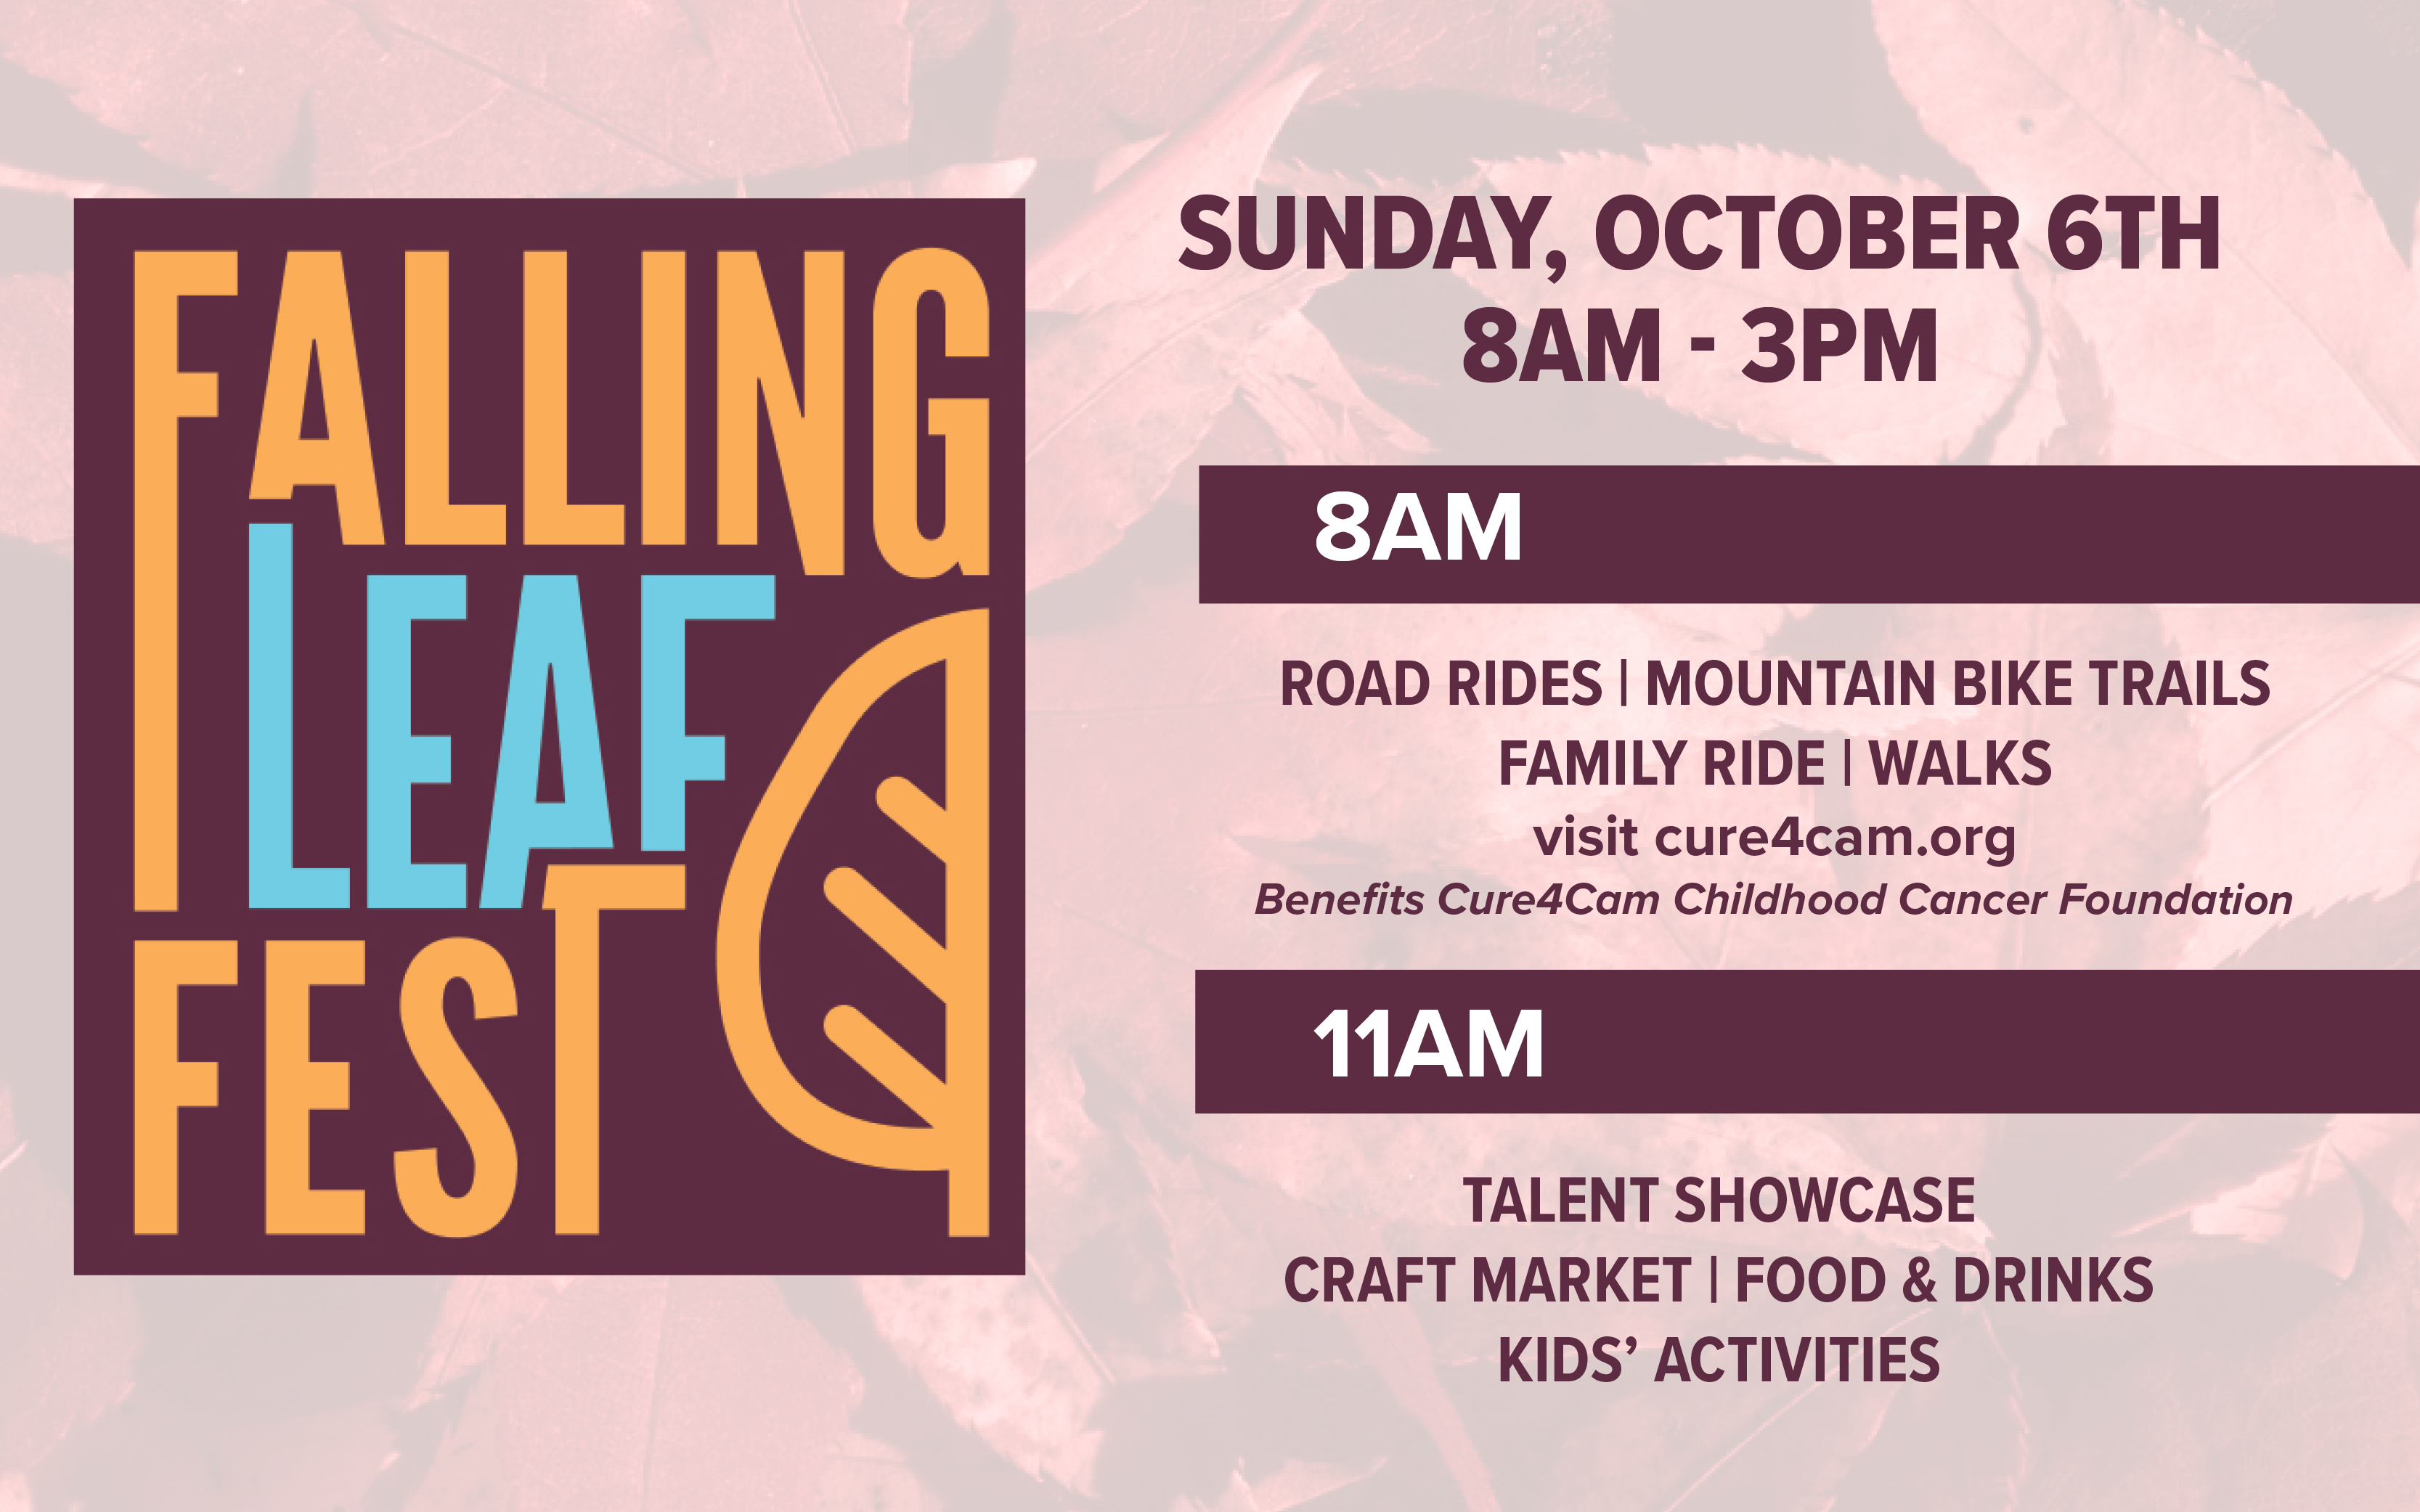 Falling Leaf Fest Returns to Eagleview Town Center on Sunday